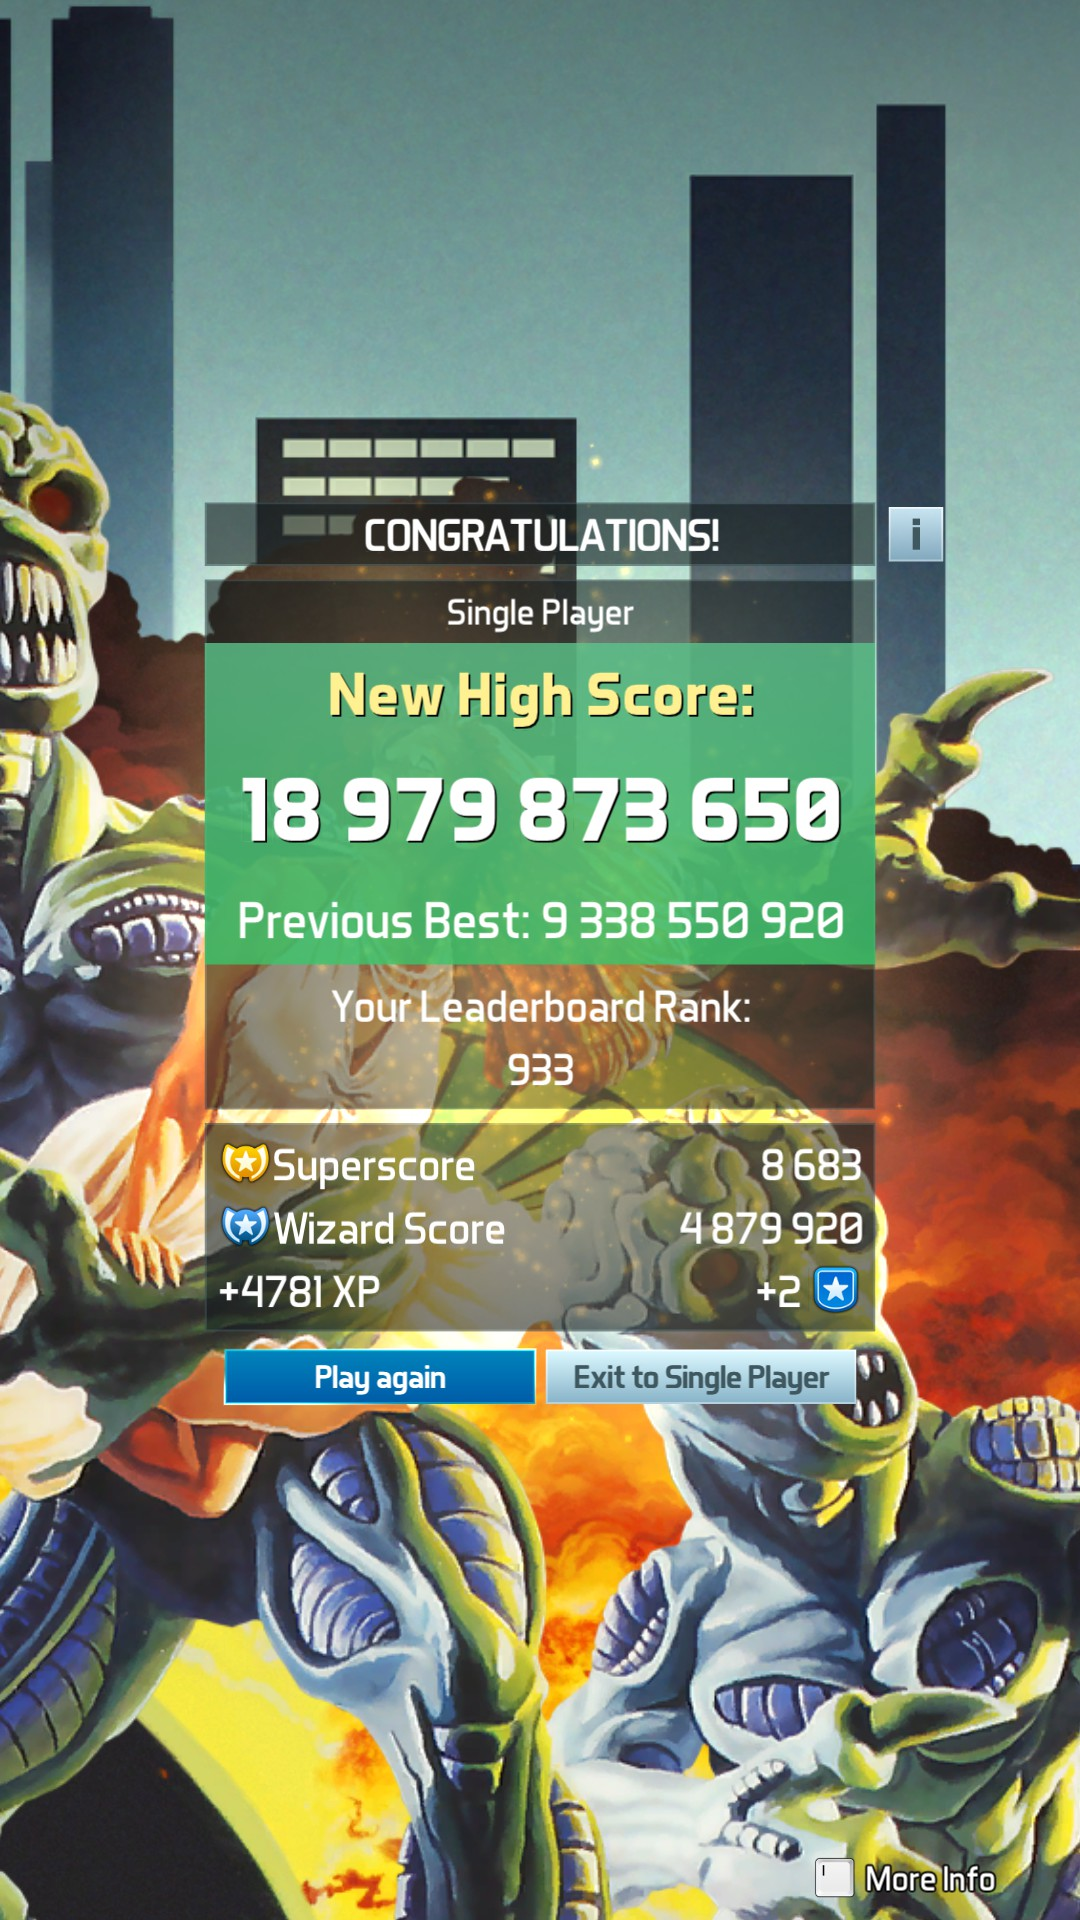 GTibel: Pinball FX3: Attack From Mars [Standard] (PC) 18,979,873,650 points on 2019-04-24 07:57:33